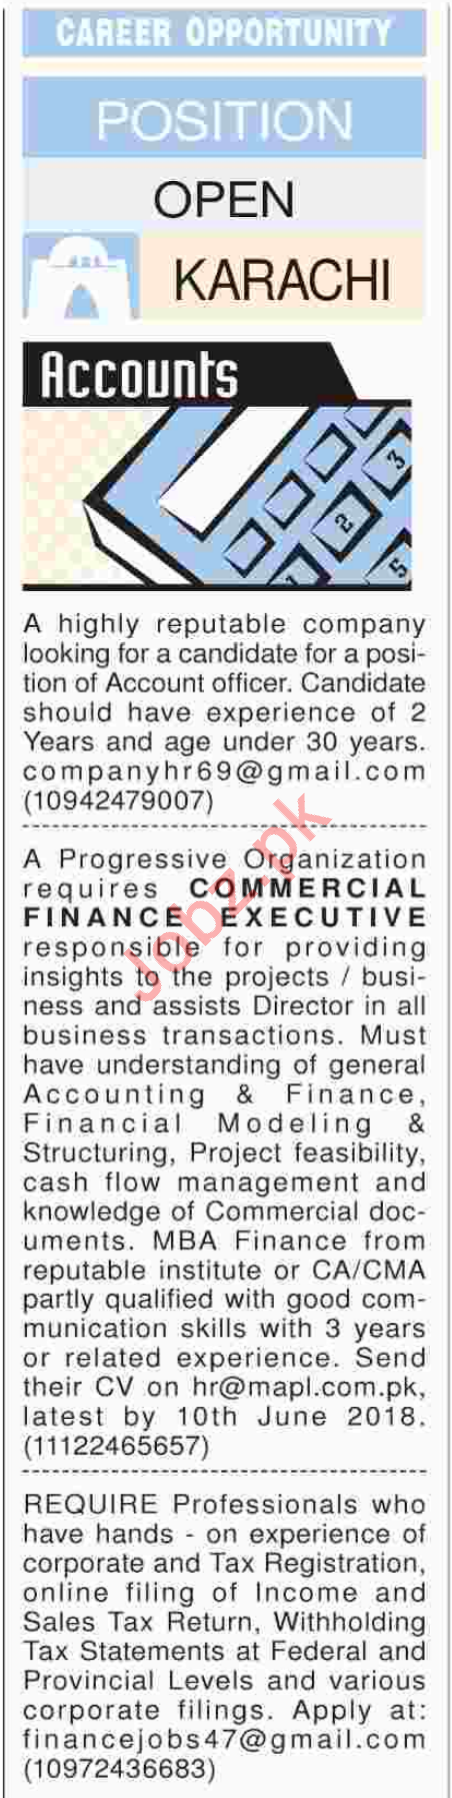 Accounts staff required